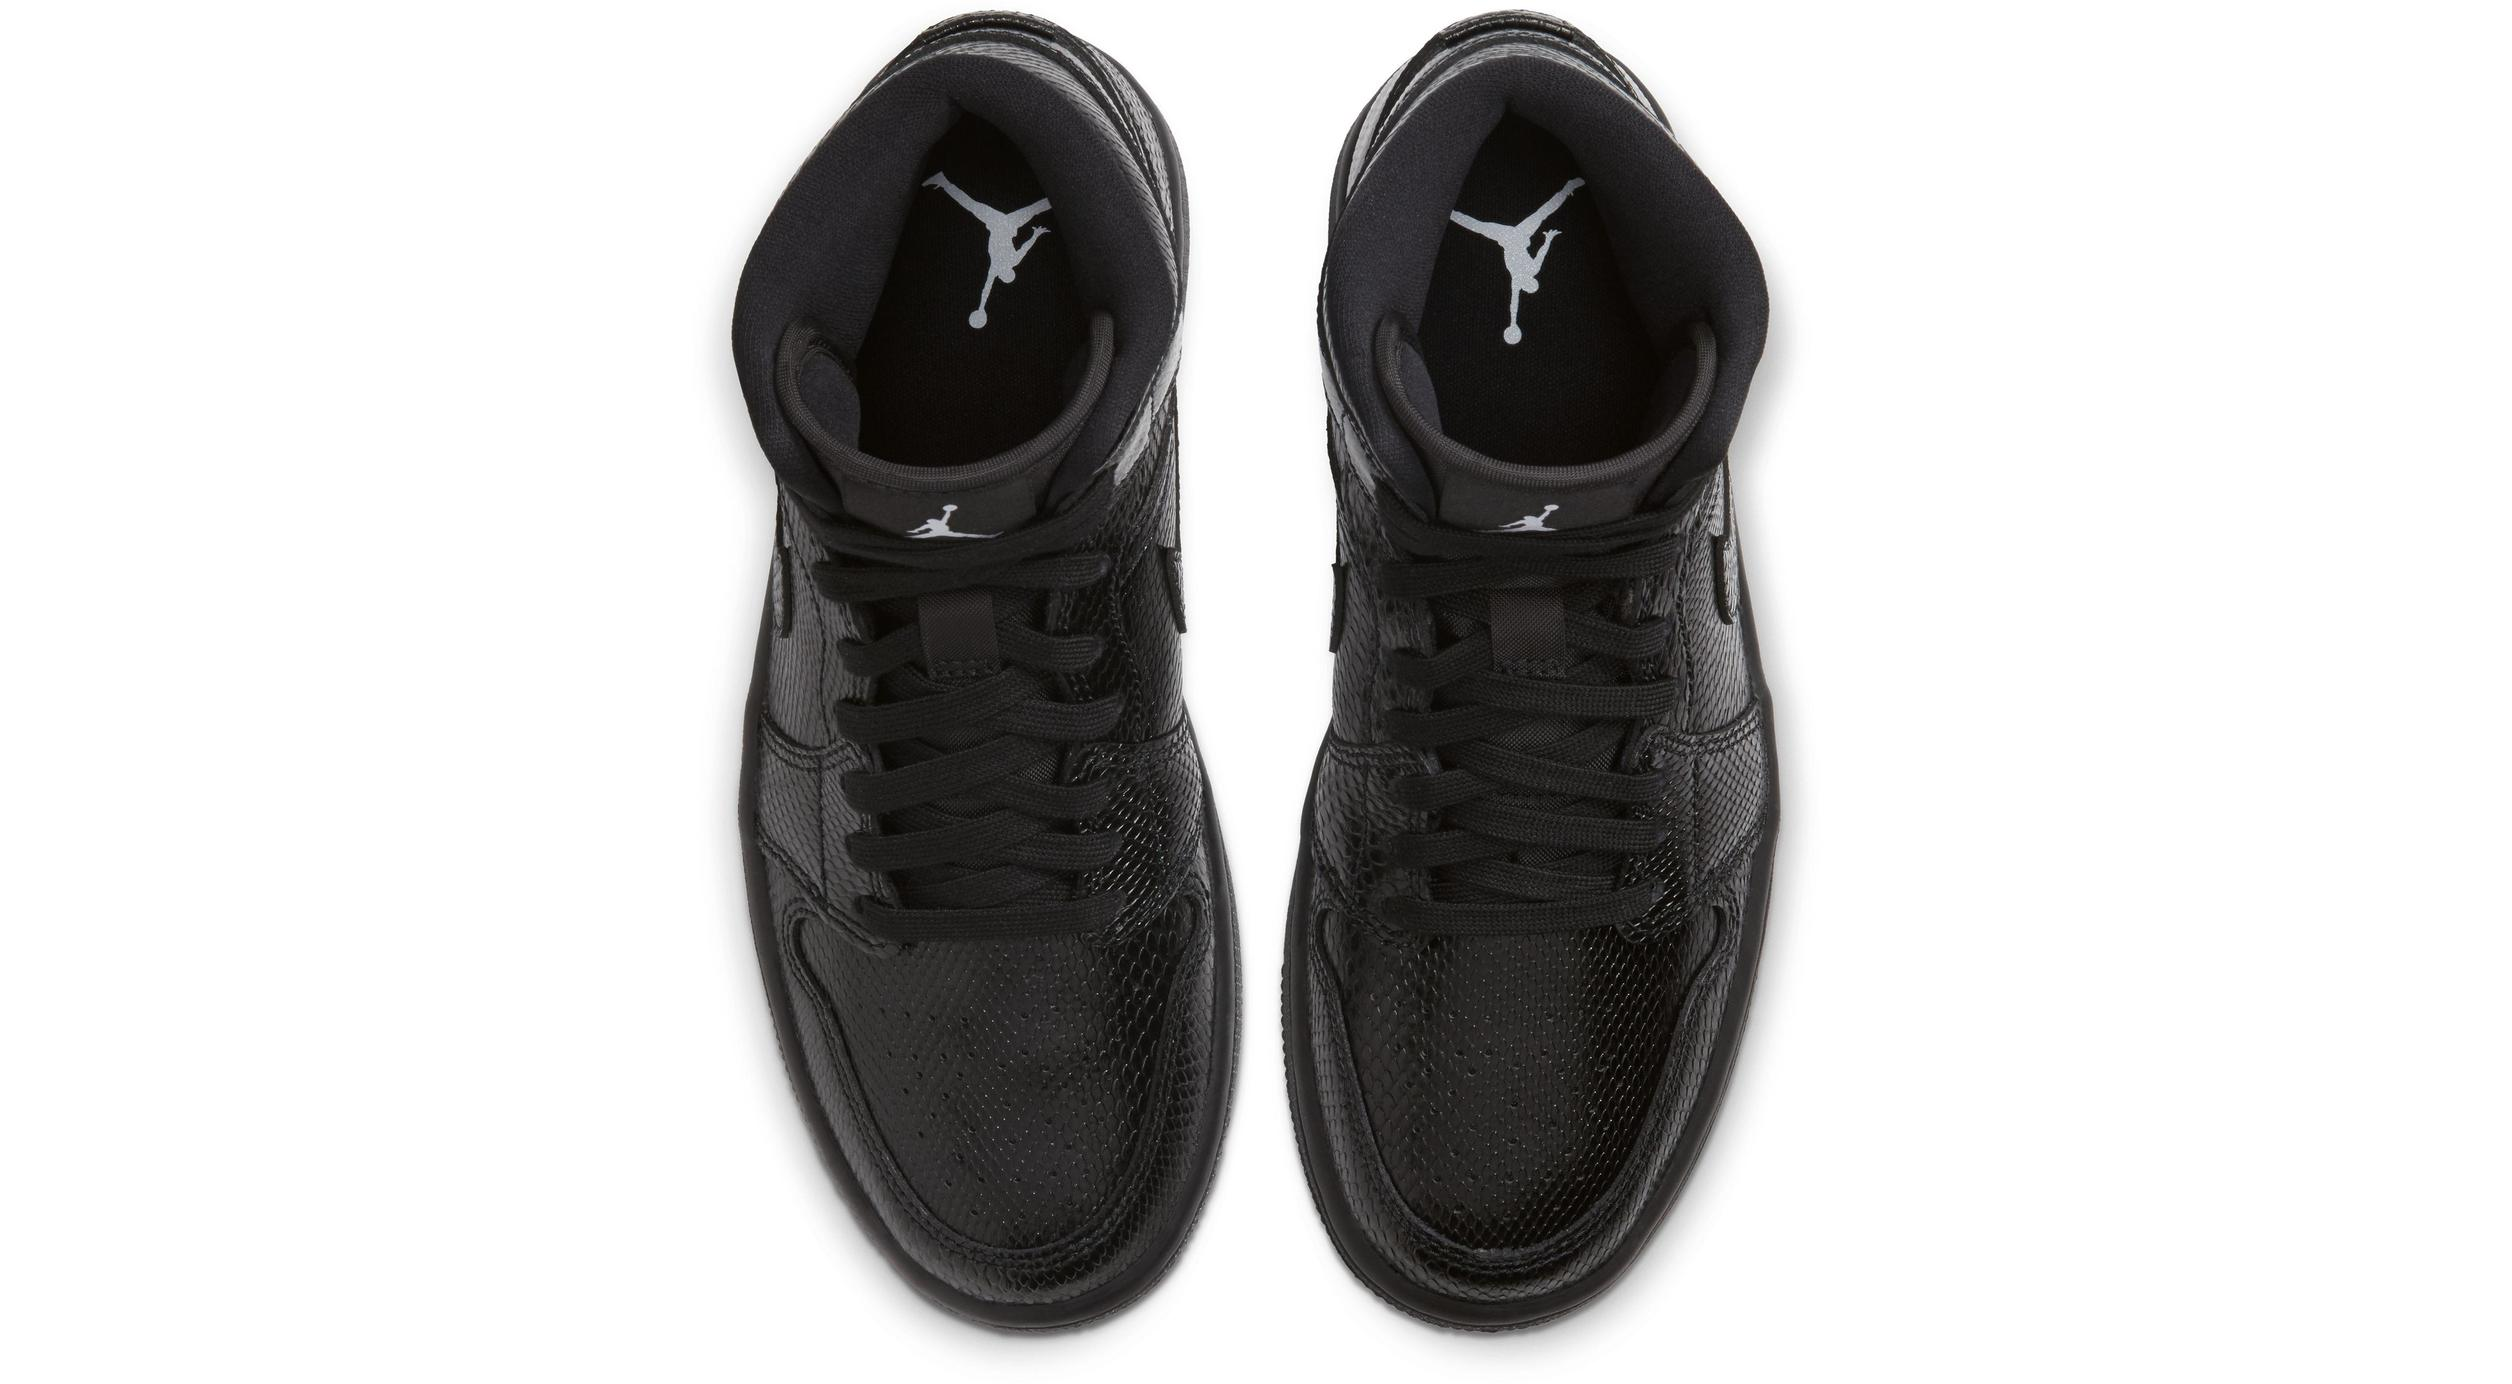 Air Jordan 1 Mid Black/White/Black